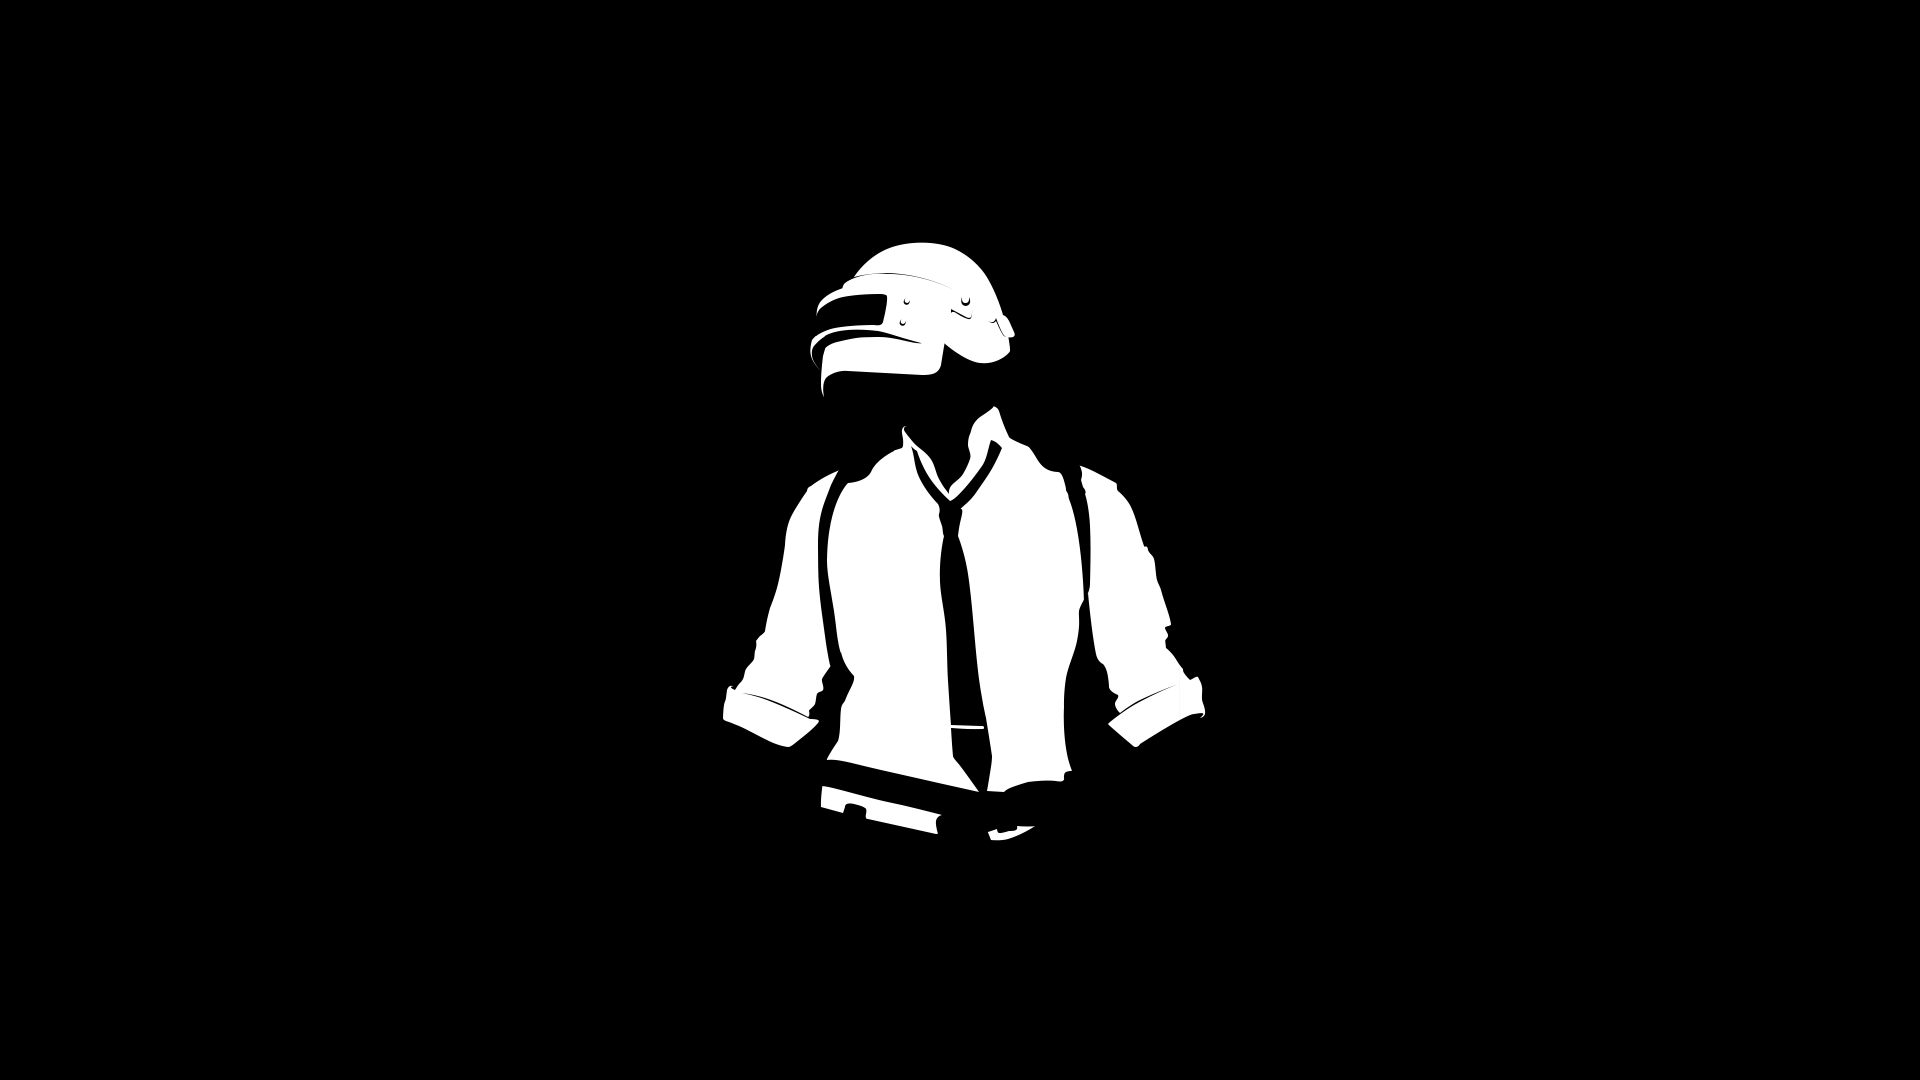 Download Pubg Minimalist Pophead 7680x4320 Resolution: PlayerUnknown's Battlegrounds Wallpapers